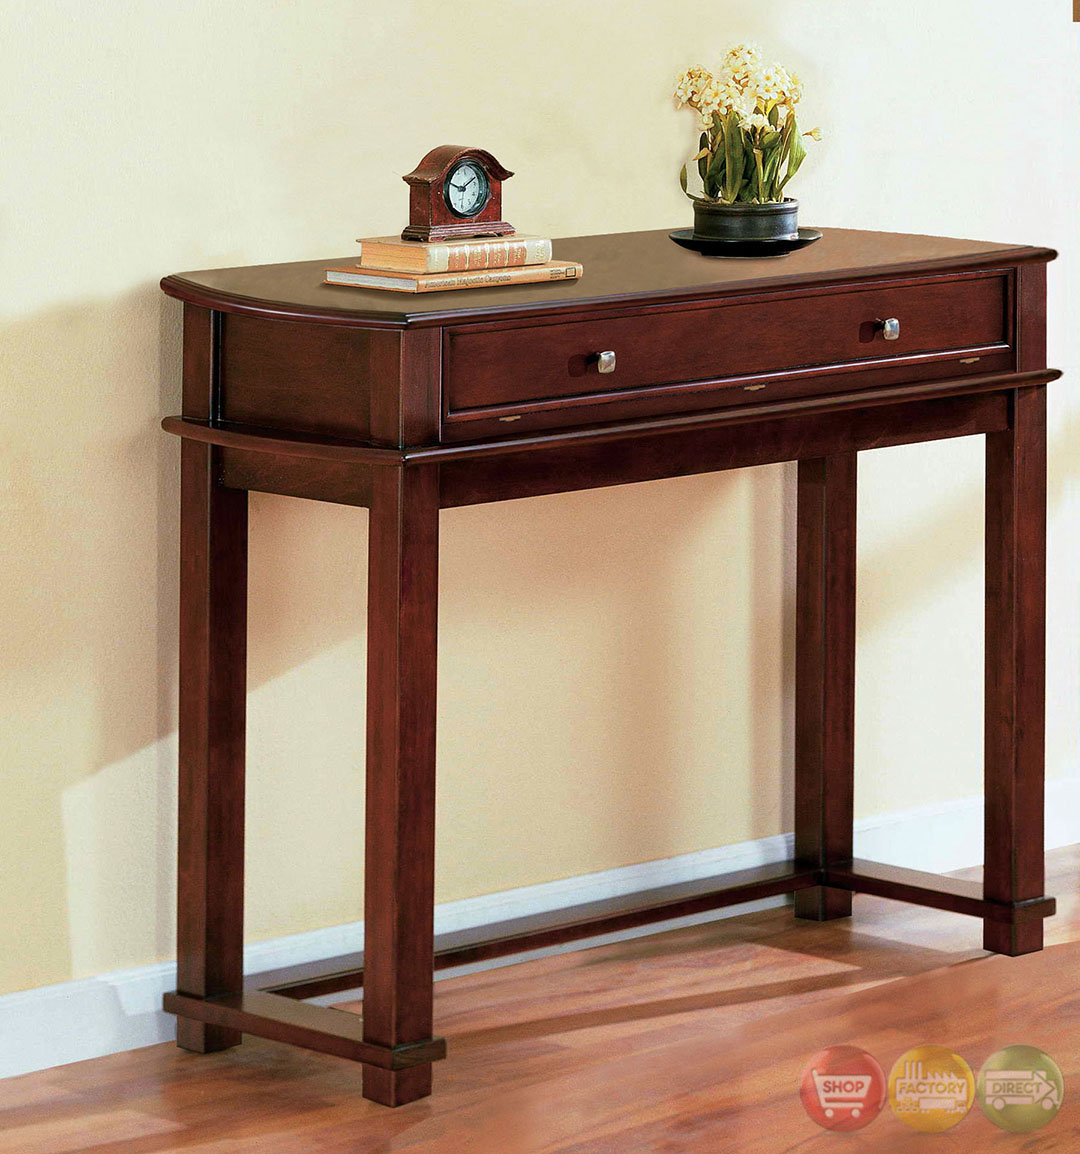 pine hurst cherry accent tables with drawer coffee table wicker elkton end three painted yellow solid wood low country style sets pallet furniture instructions free standard side